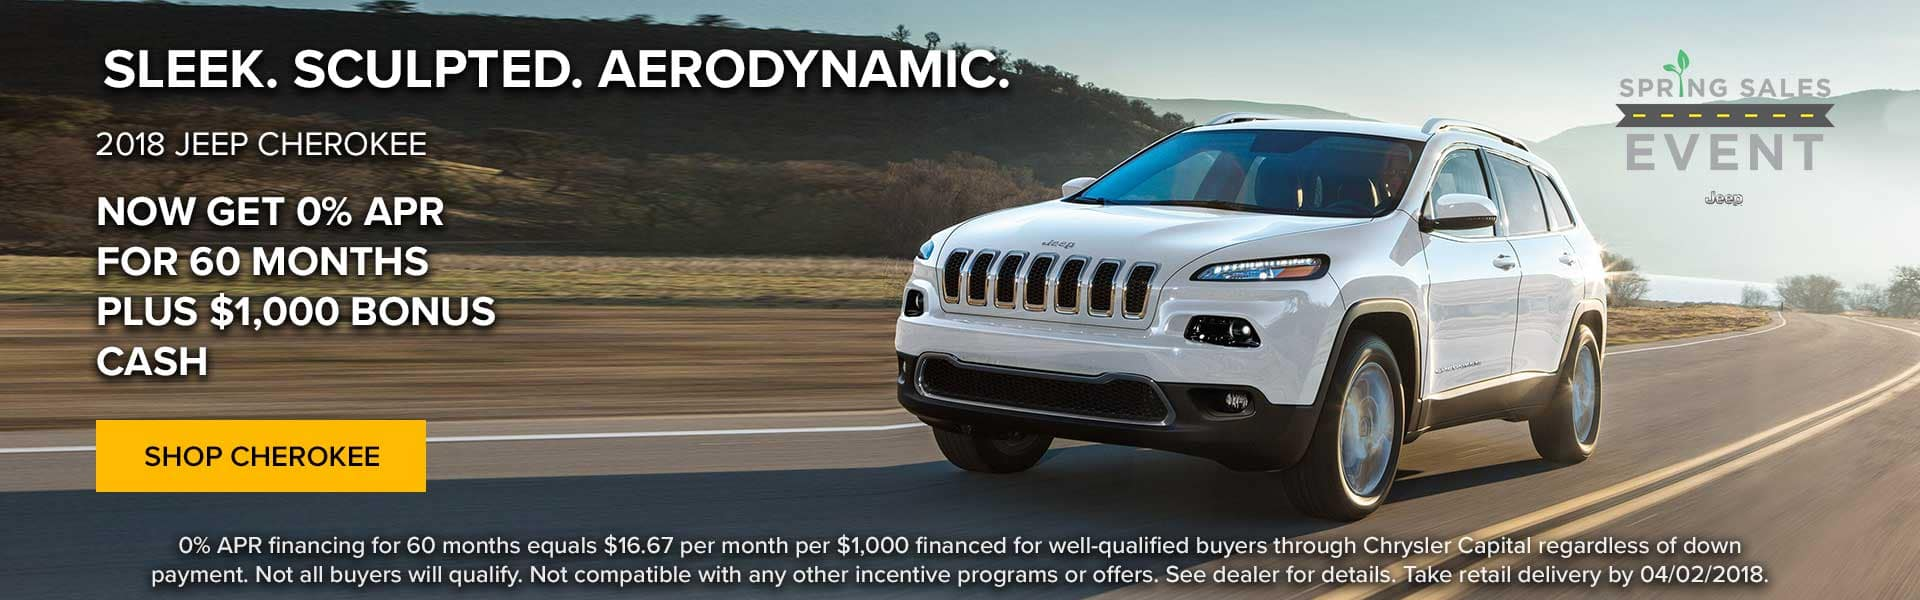 Now get 0% APR for 60 months plus $1000 bonus cash on 2018 Jeep Cherokee at Newberg Jeep Ram Dodge